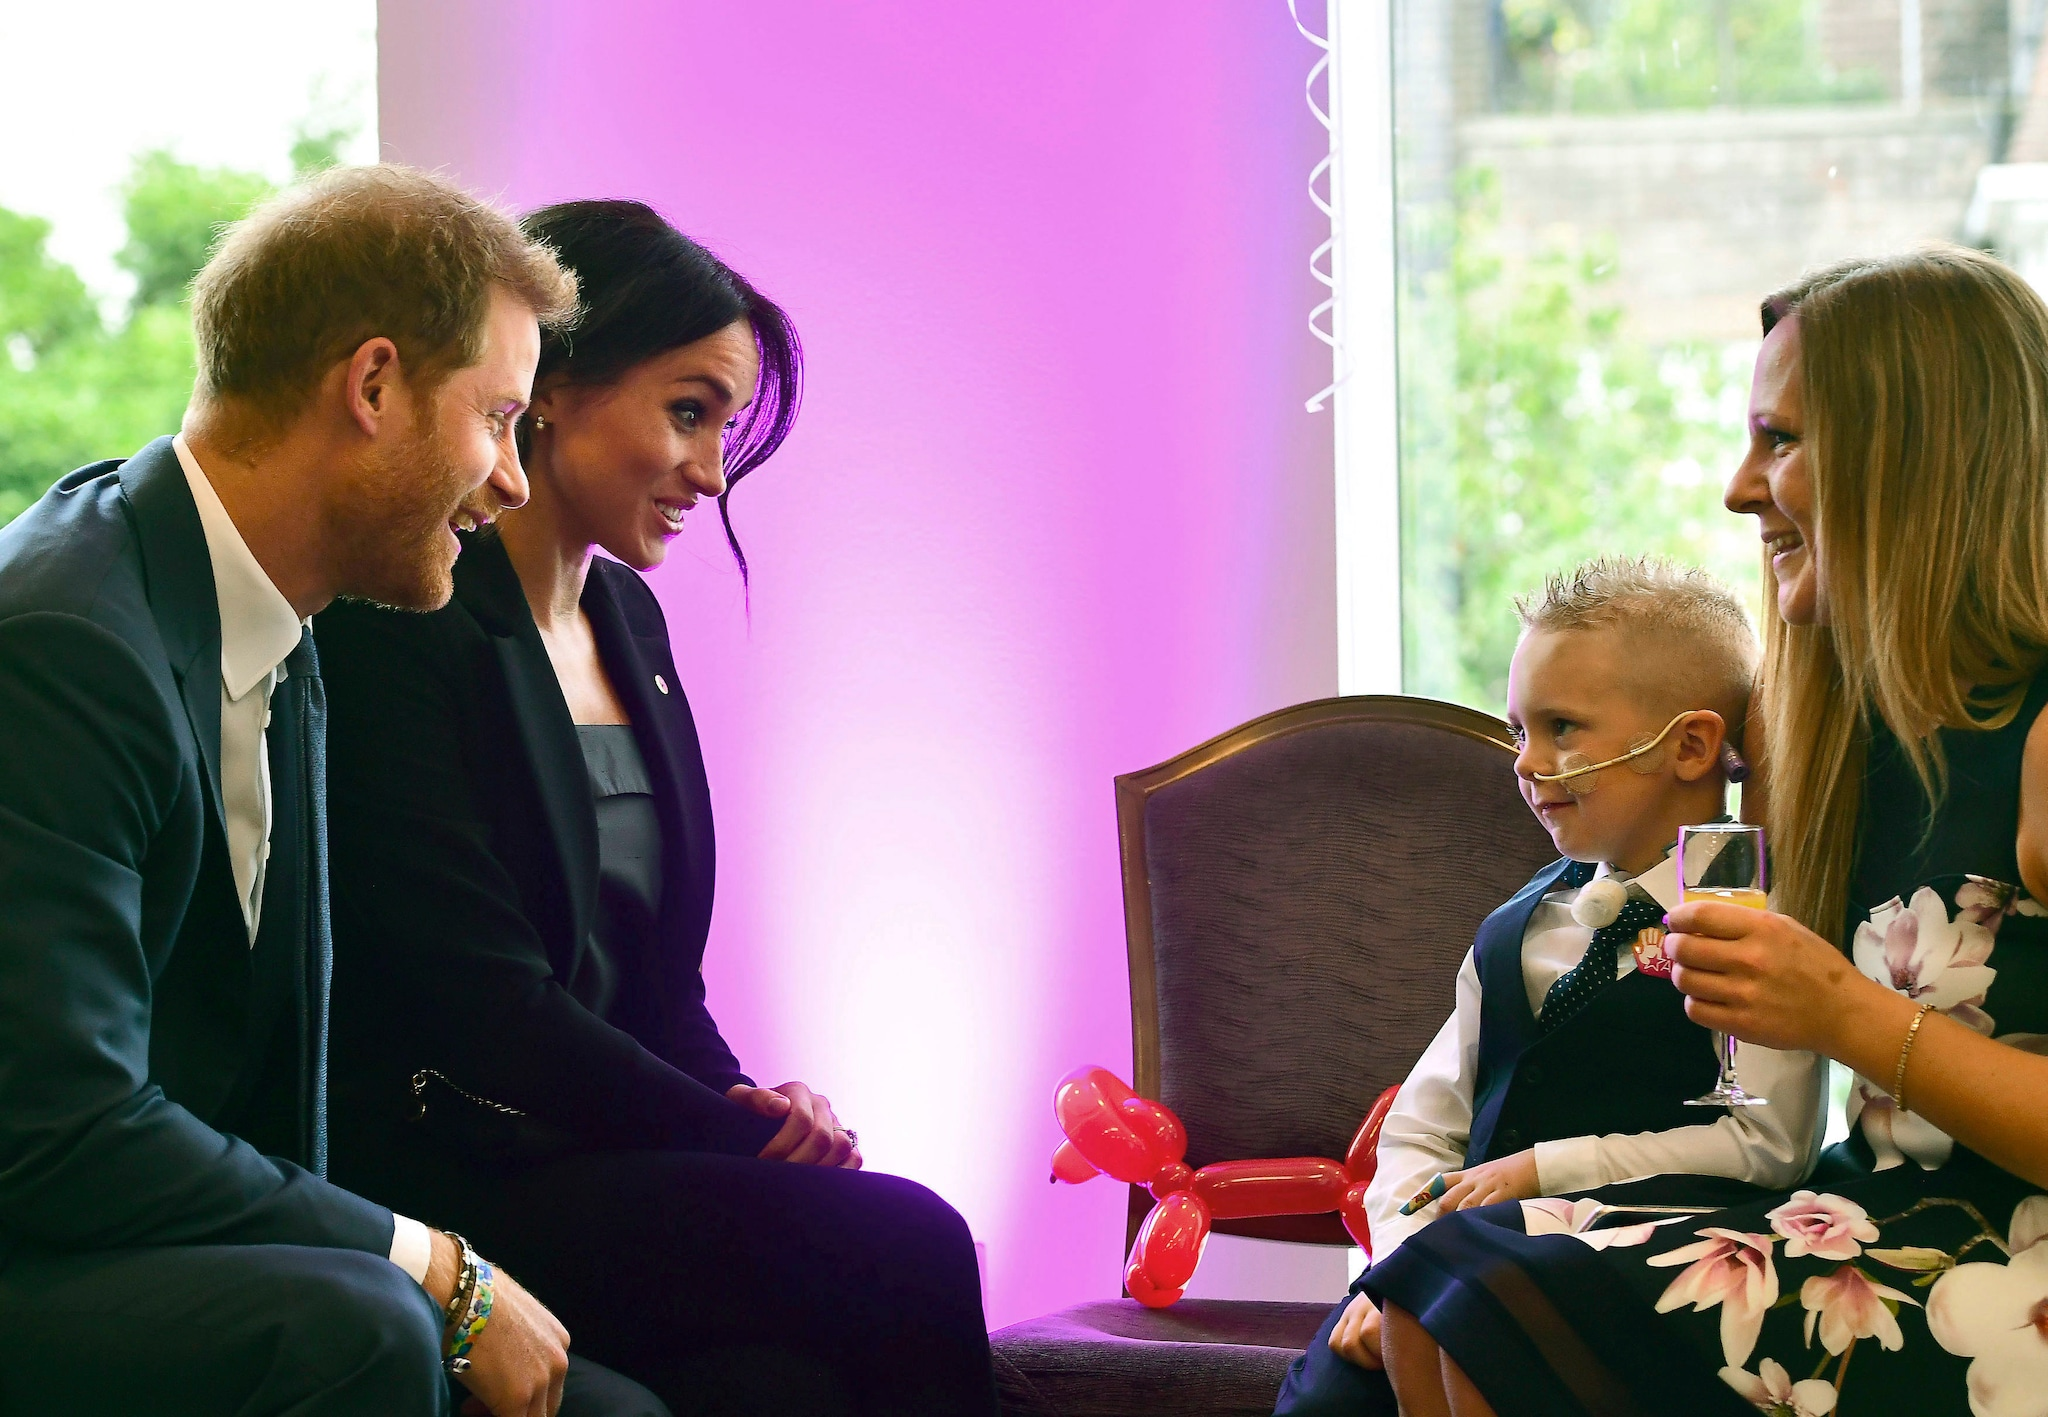 FILE - In this Tuesday, Sept. 4, 2018 file photo , Britian's Prince Harry, the patron of the charity WellChild and his wife Meghan, the Duchess of Sussex meet four-year-old Mckenzie Brackley and his mother, during the annual WellChild Awards at the Royal Lancaster Hotel in London. Sunday, May 19, 2019 marks the first wedding anniversary of the besotted couple. (Victoria Jones/Pool Photo via AP, File)